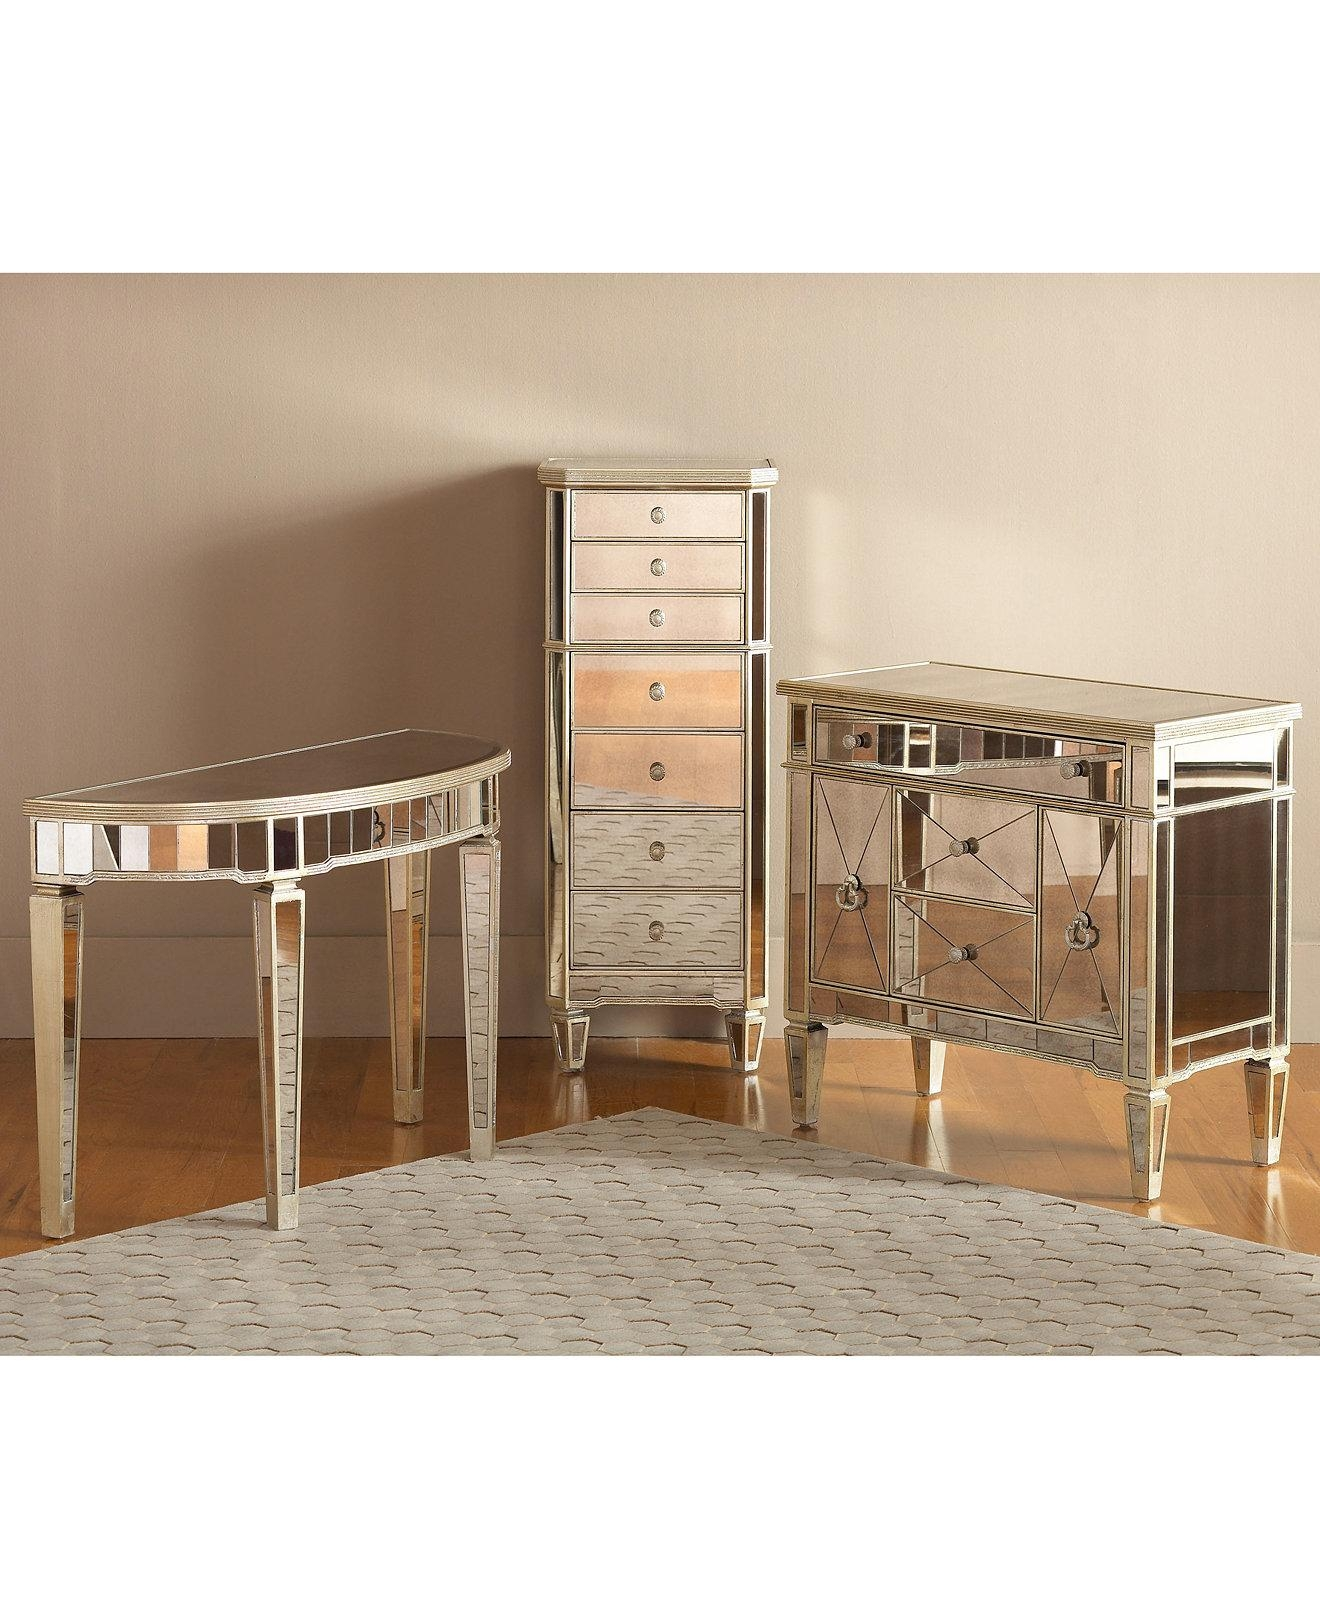 Bedroom Mirrored Furniture Ebay Sale Canada Uk | Tamingthesat With Regard To Mirrored Furniture (Image 3 of 20)